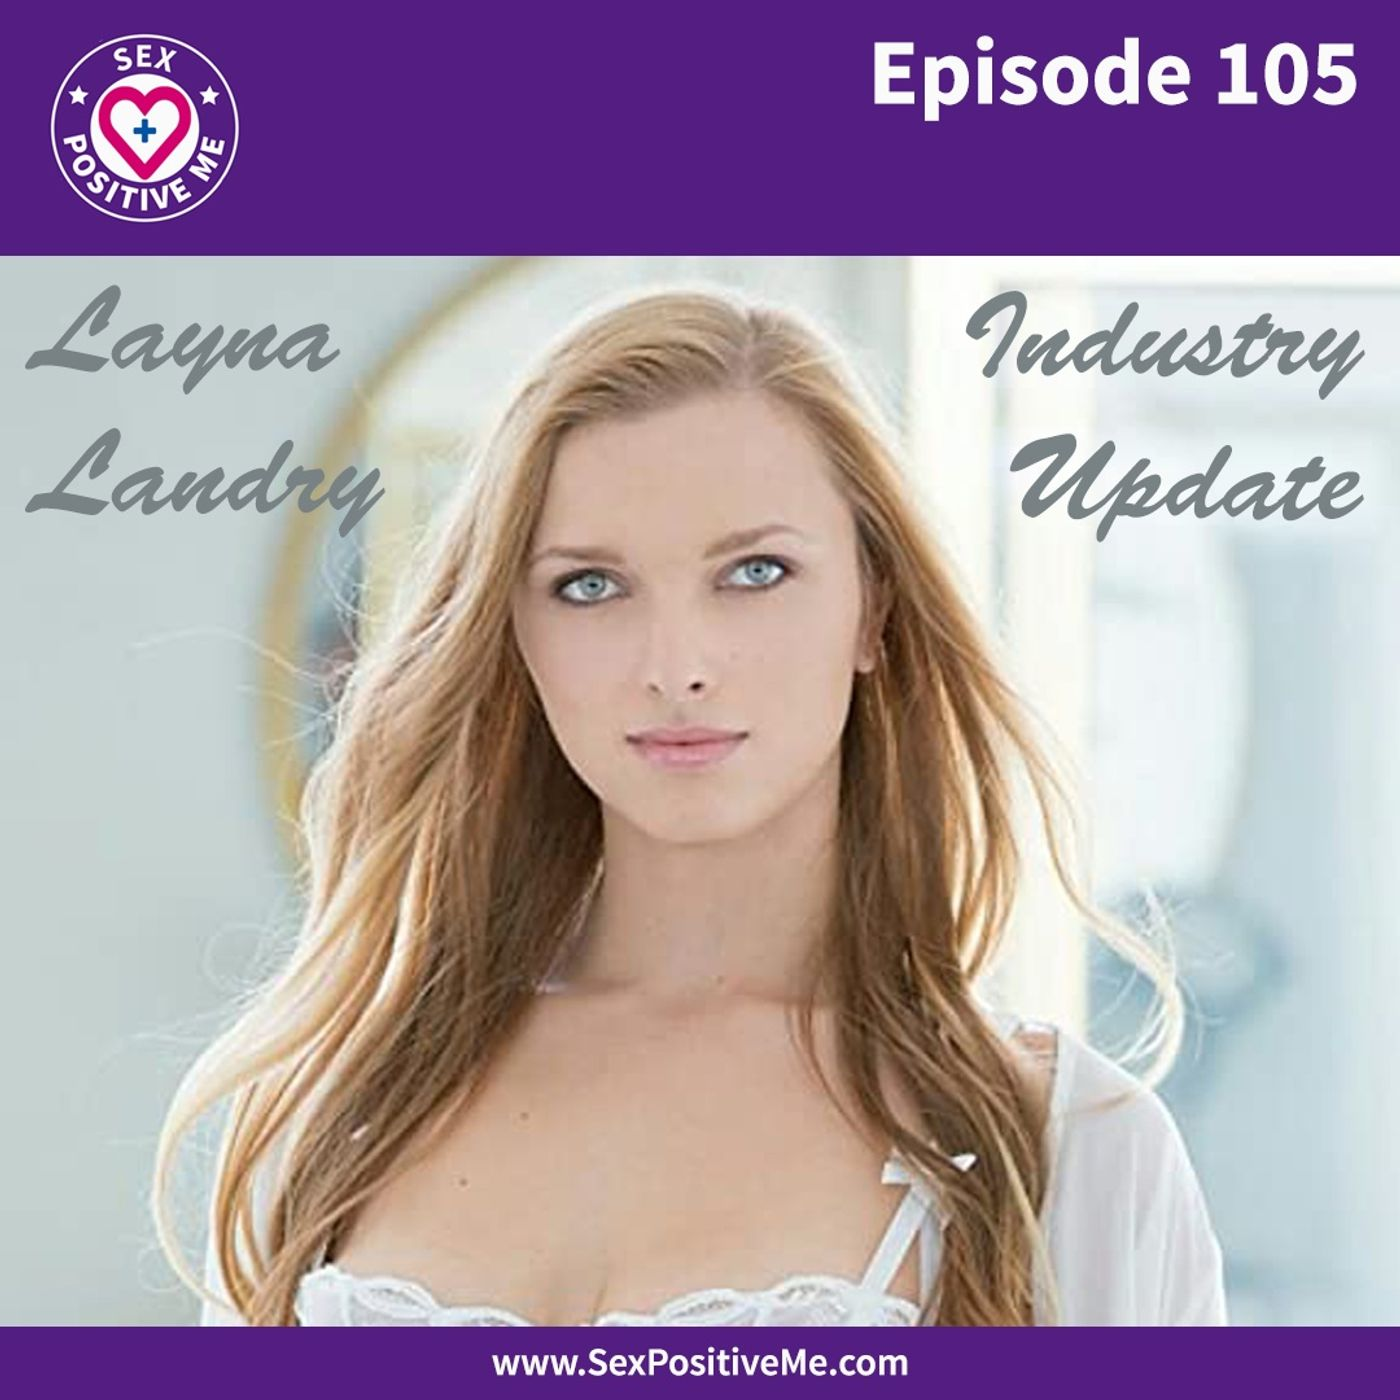 Sex Positive Me - E105: Industry Update with Layna Landry